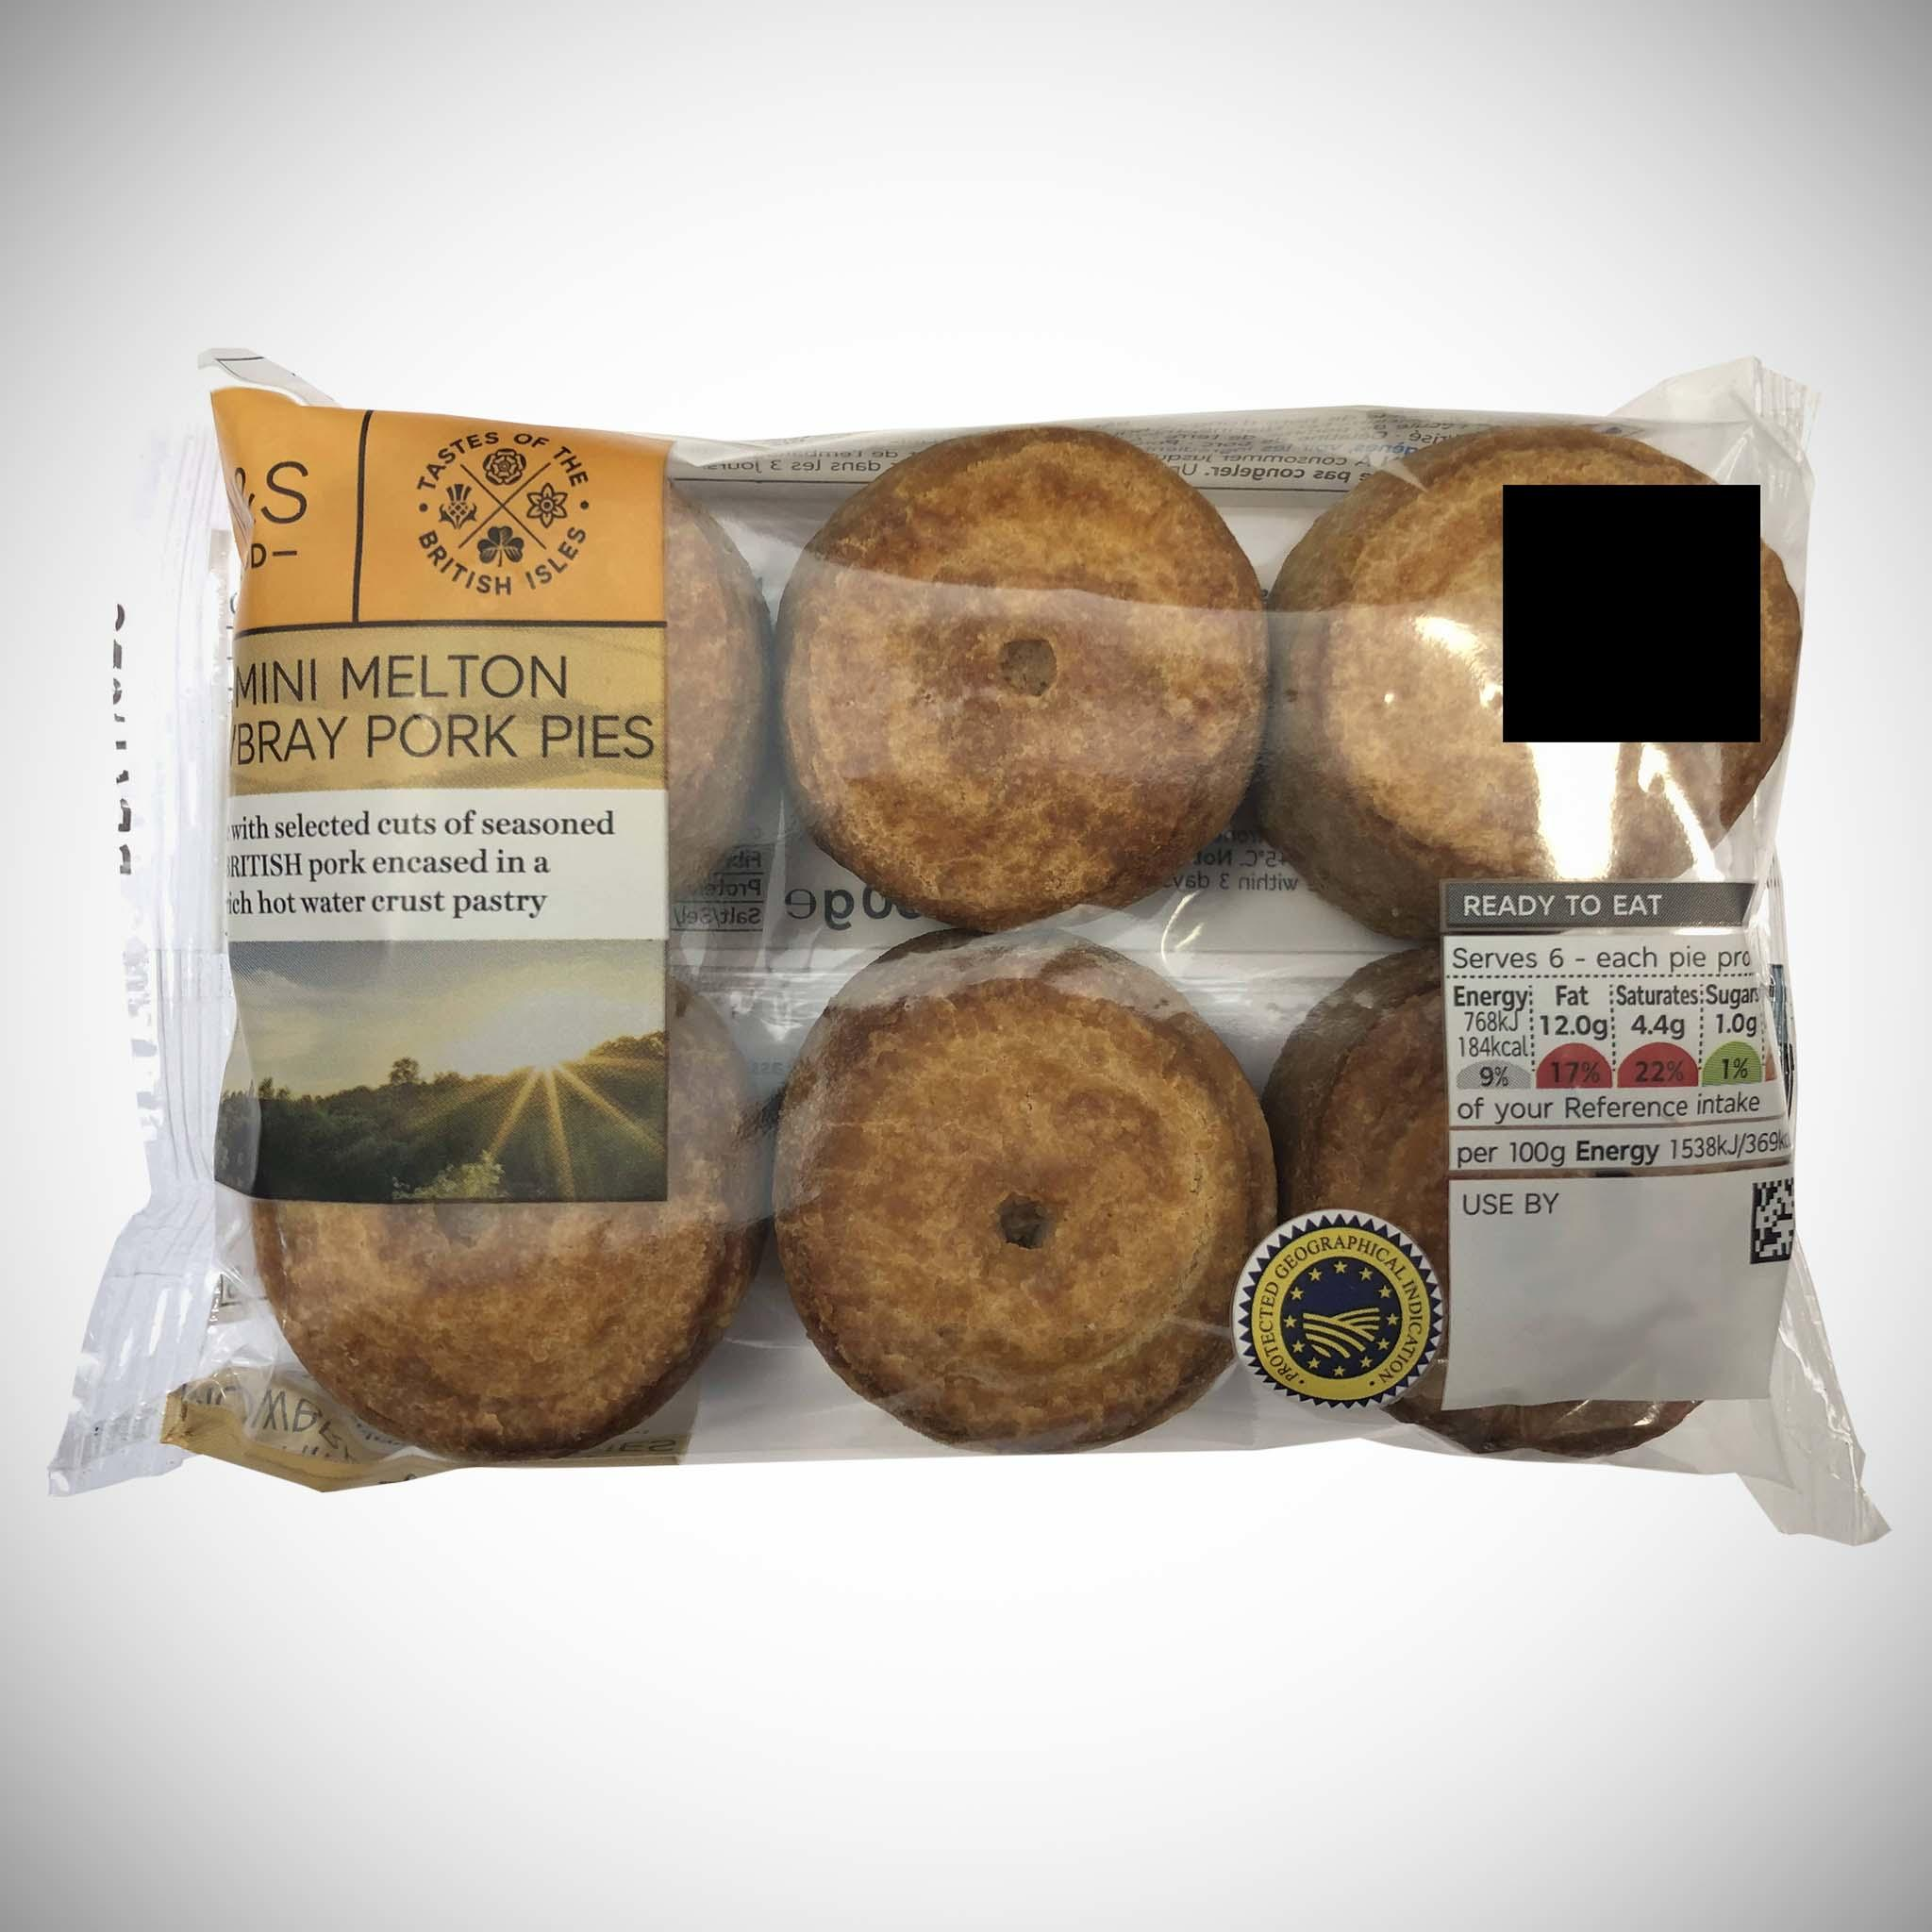 6 Melton Mowbray Pork Pies